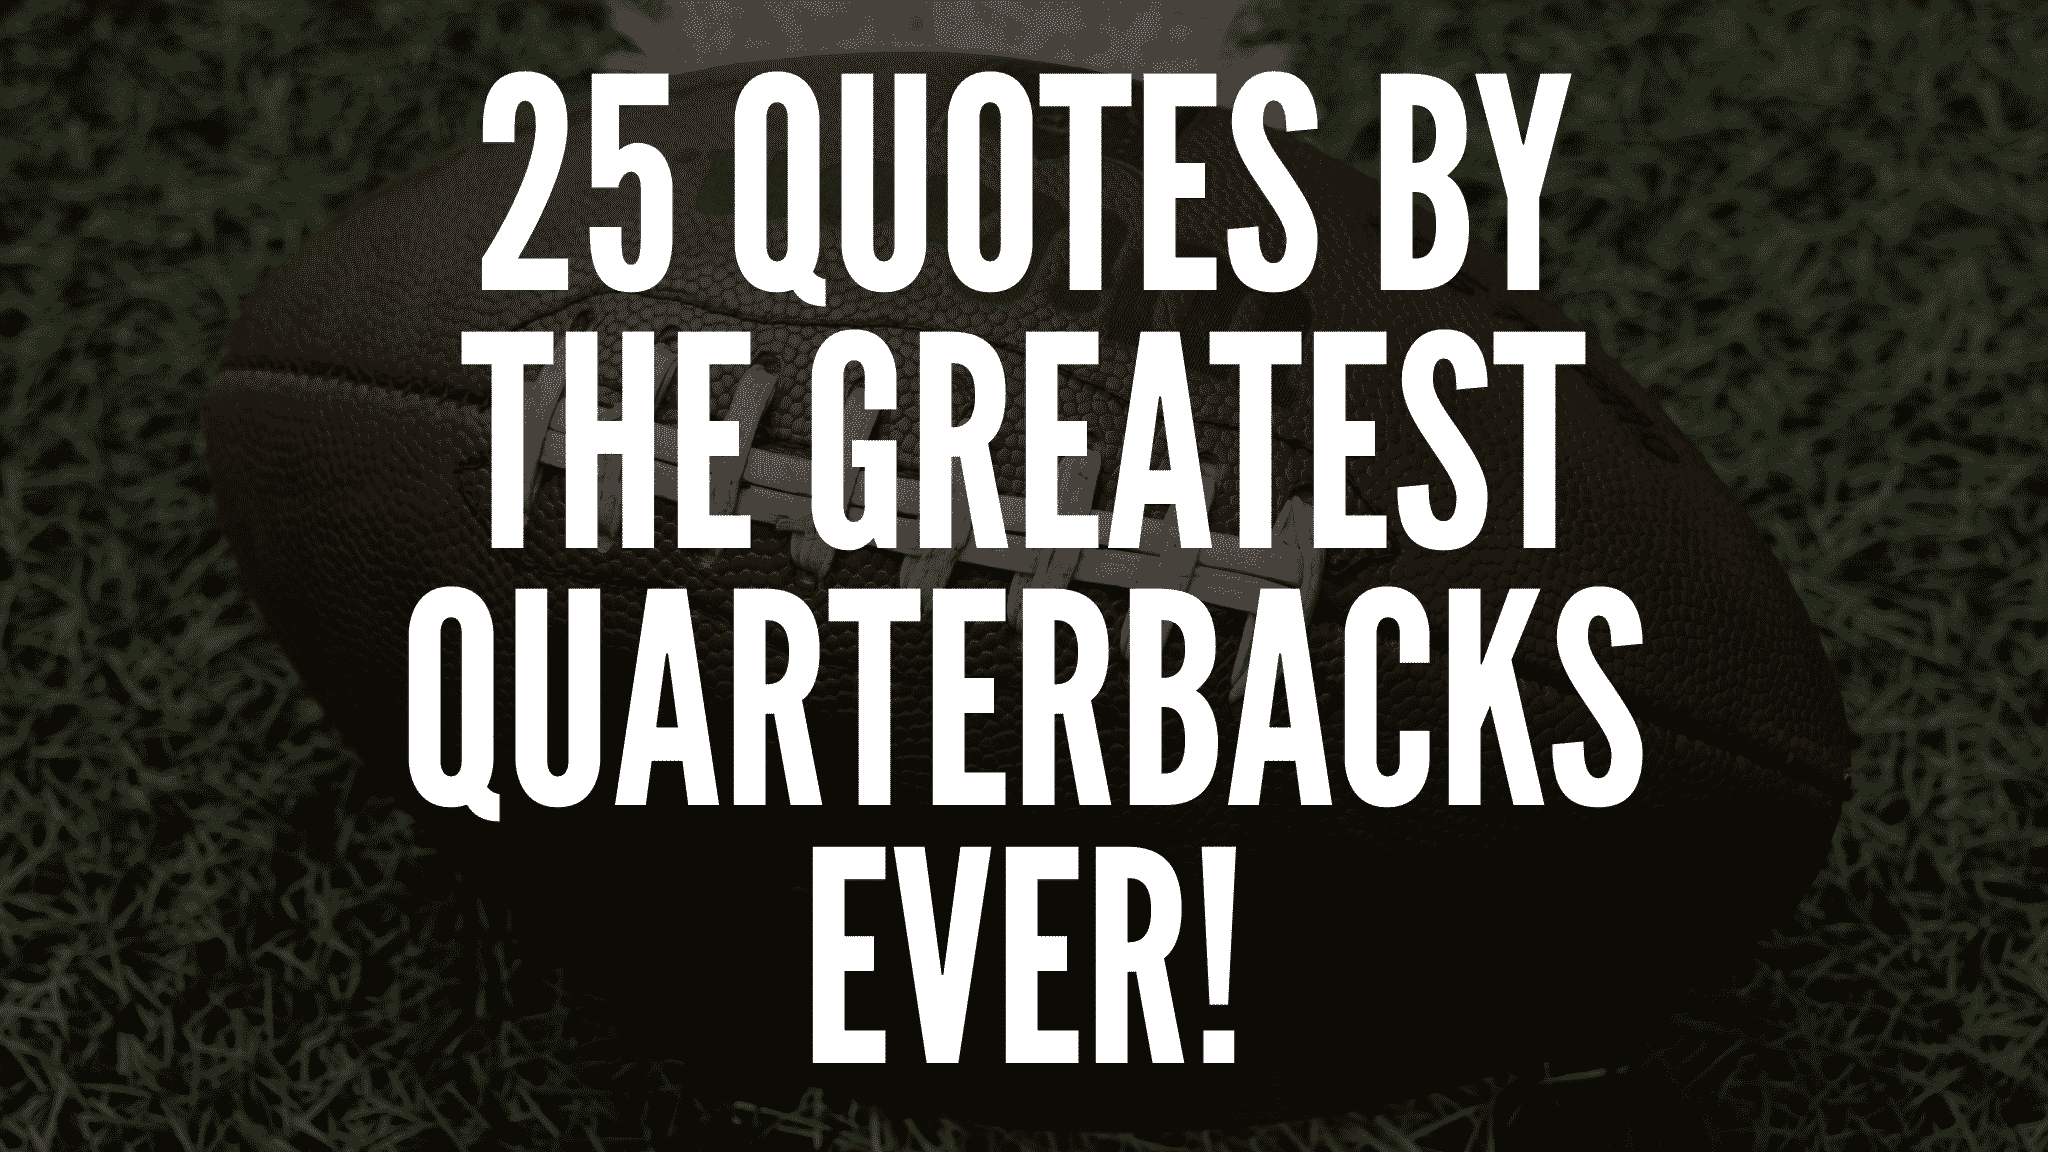 25 Quotes By The Greatest Quarterbacks Ever!